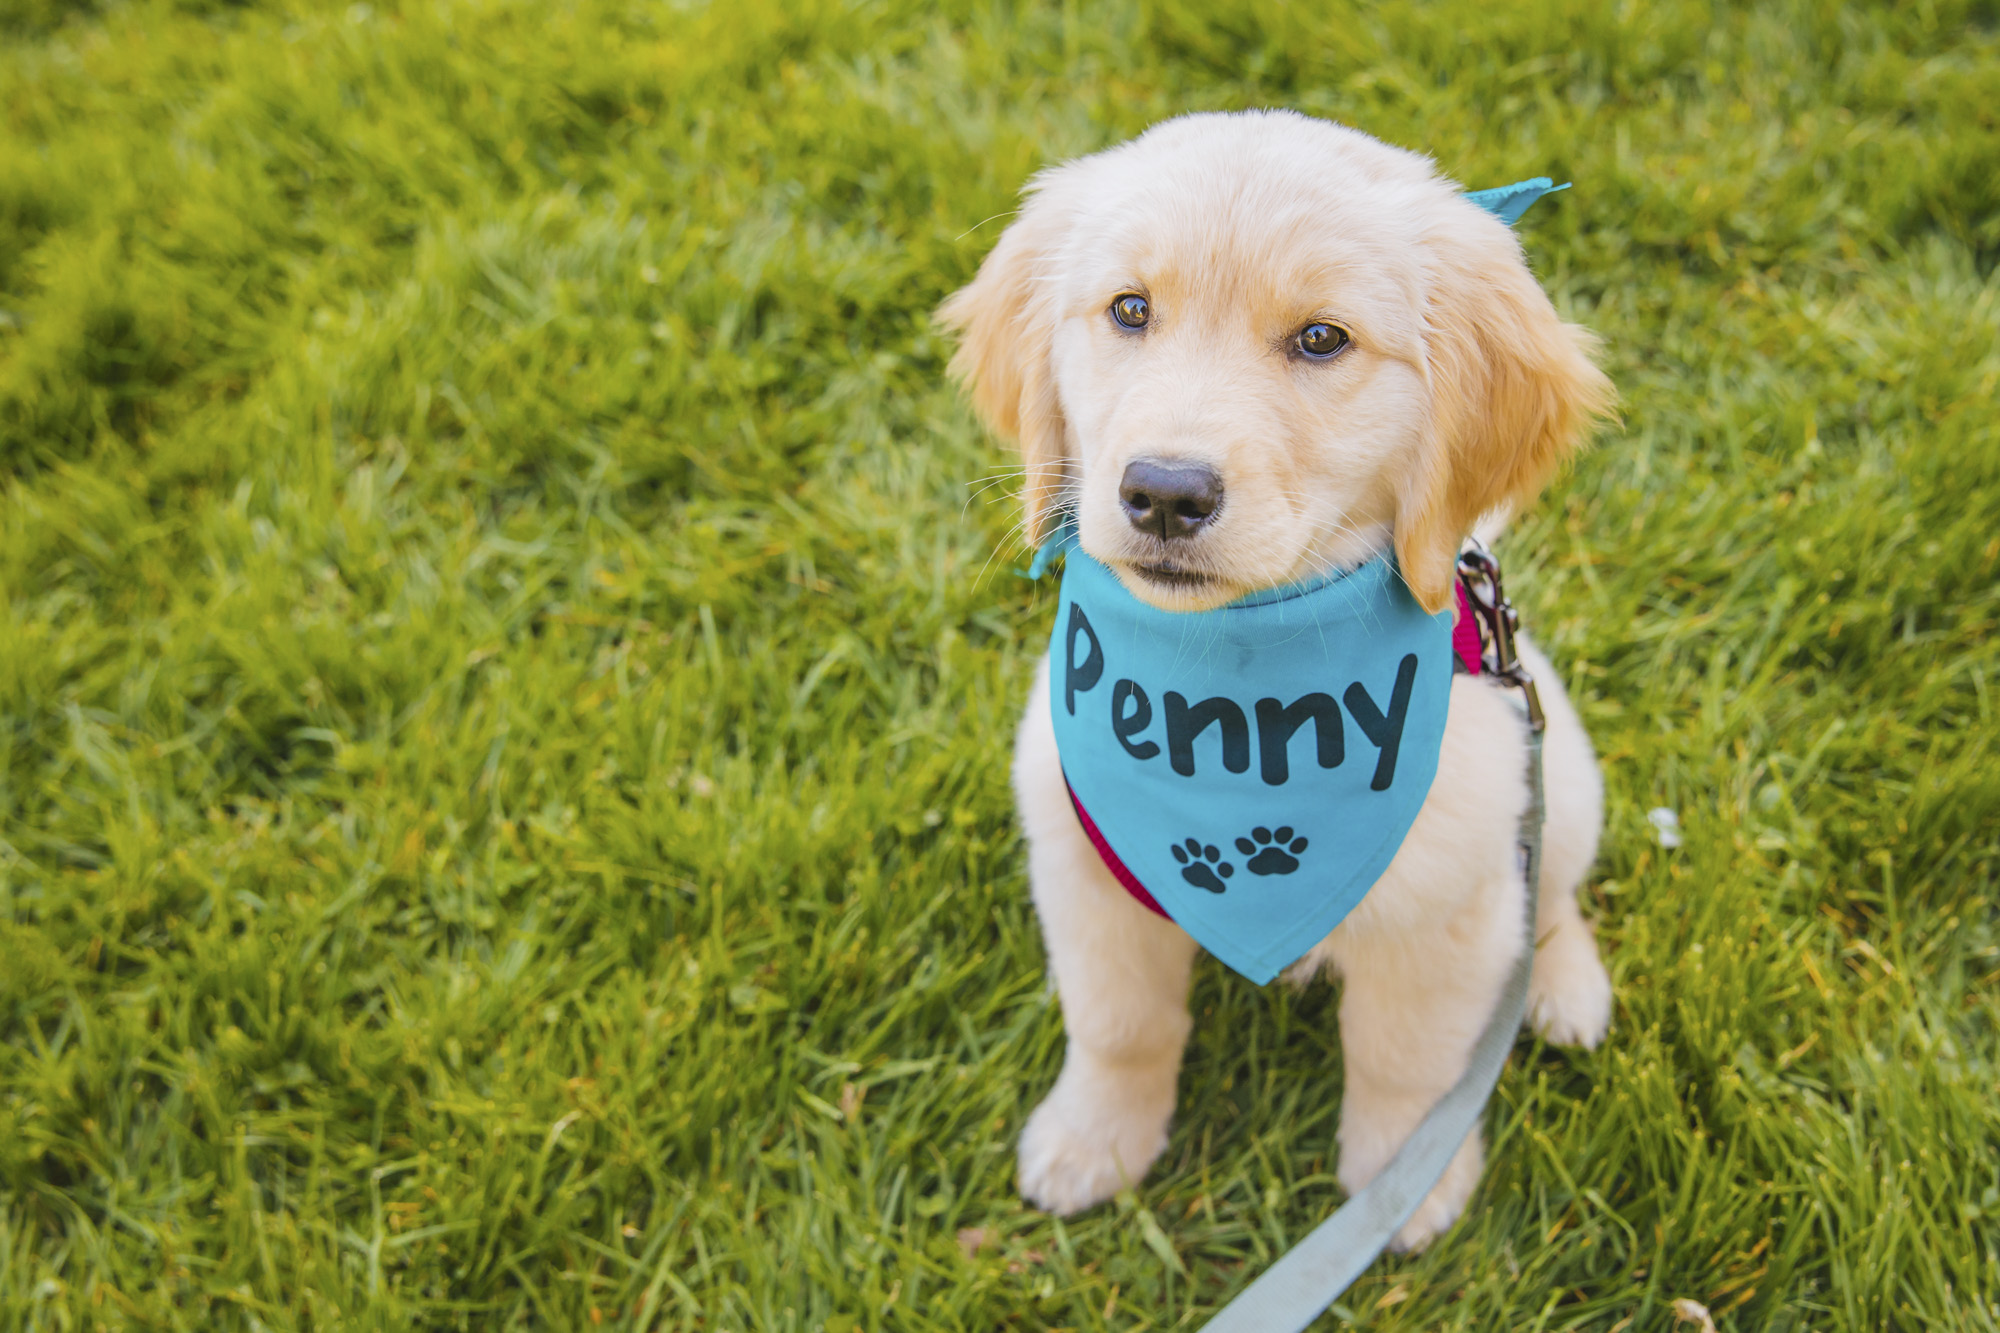 "Meet this gorgeous, gorgeous blonde - Penny Dickens the 12-week-old Golden Retriever. Penny is a sassy, smart, Seattle gal - she loves to explore and pet pets whenever possible. As a self proclaimed foodie who is highly motivated by snacks, Penny has mastered tricks at just 12 weeks and is currently working on the notorious ""roll over."" You can see her at a dog park near you! She likes pinecones, hammocks, teddy bears and posing for instagram. She dislikes Ramsay Bolton (same), and when her mom and dad nap without her (same). You can follow sassy Penny on instagram, @LuckyPenny_ThePuppy.{ }The Seattle RUFFined Spotlight is a weekly profile of local pets living and loving life in the PNW. If you or someone you know has a pet you'd like featured, email us at hello@seattlerefined.com or tag #SeattleRUFFined and your furbaby could be the next spotlighted! (Image: Sunita Martini / Seattle Refined)."